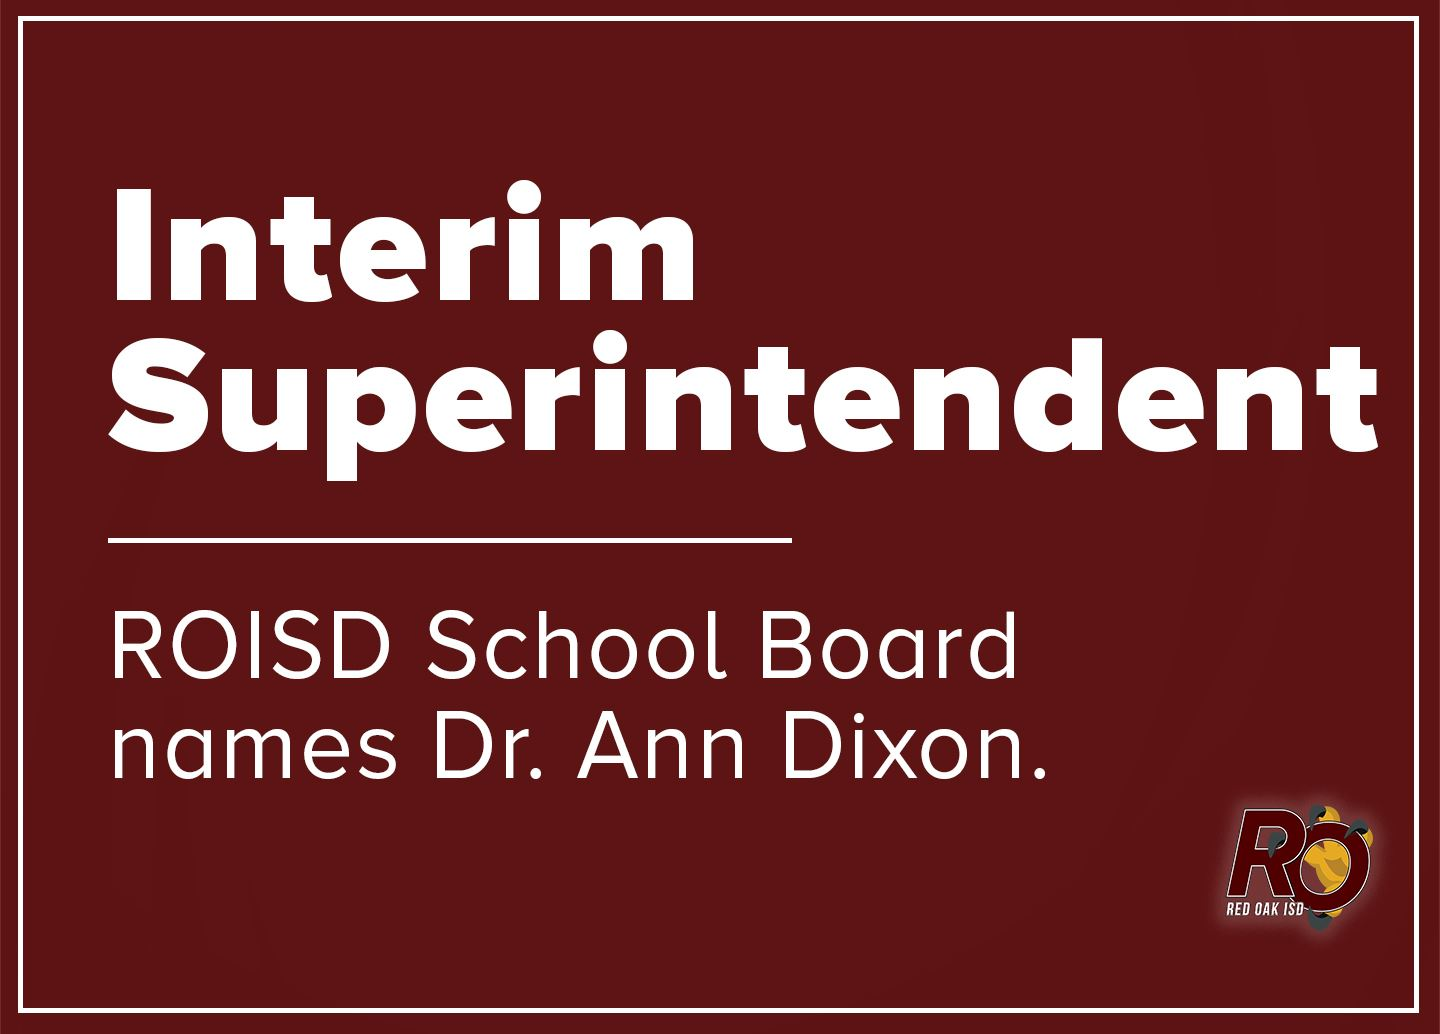 ROISD School Board names Dr. Ann Dixon as Interim superintendent